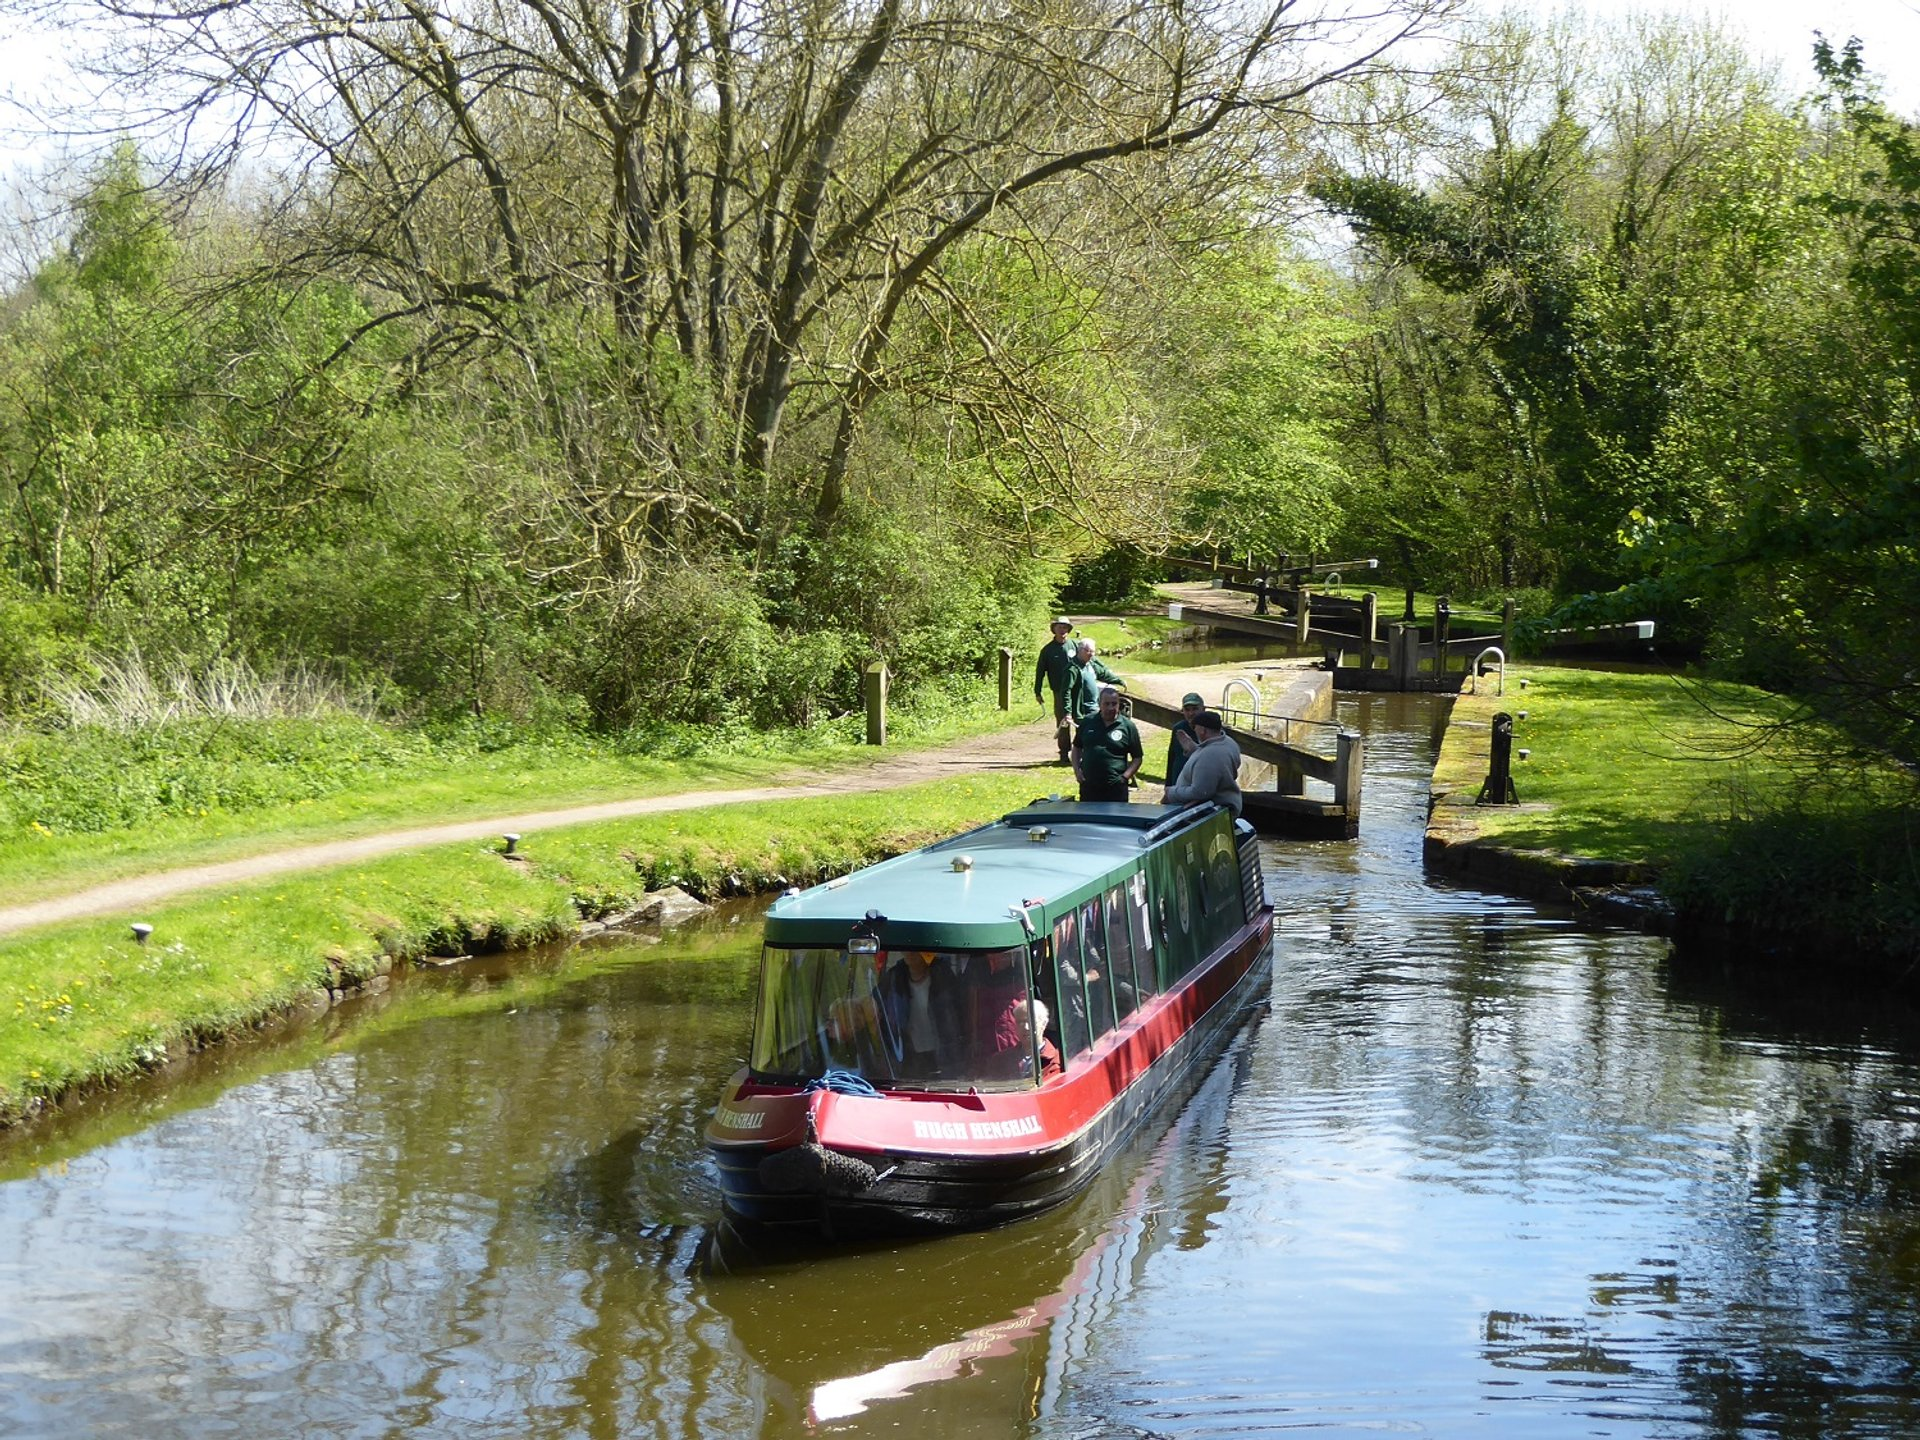 Boating along Chesterfield Canal in England 2020 - Best Time